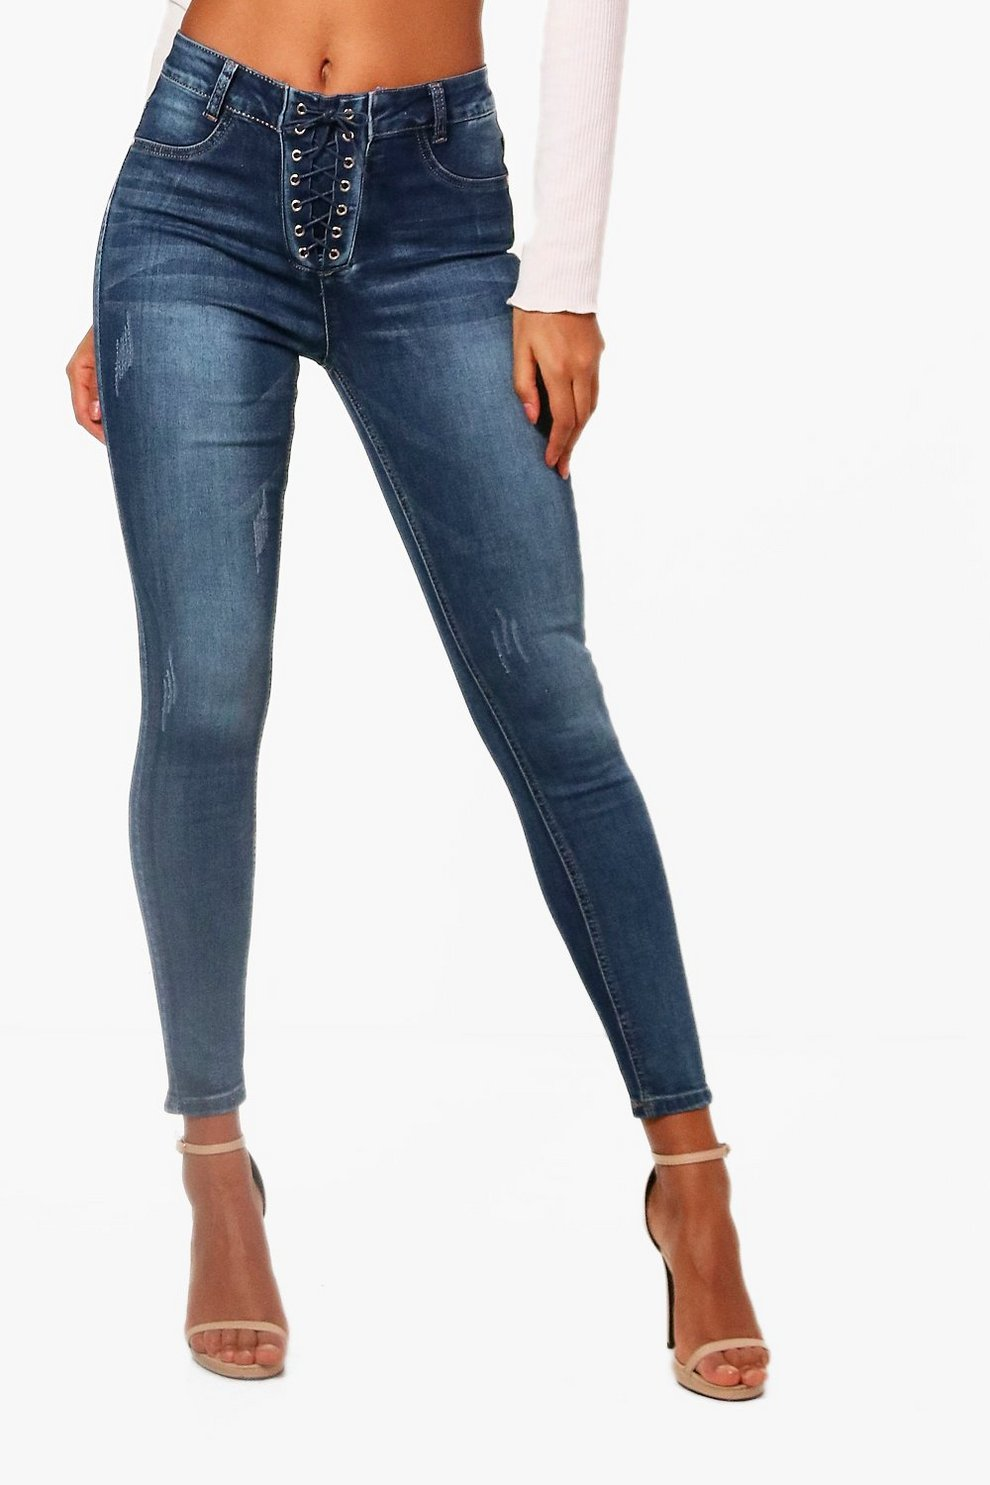 f325f896cdac Womens Mid blue Corset Lace Up High Waist Skinny Jeans